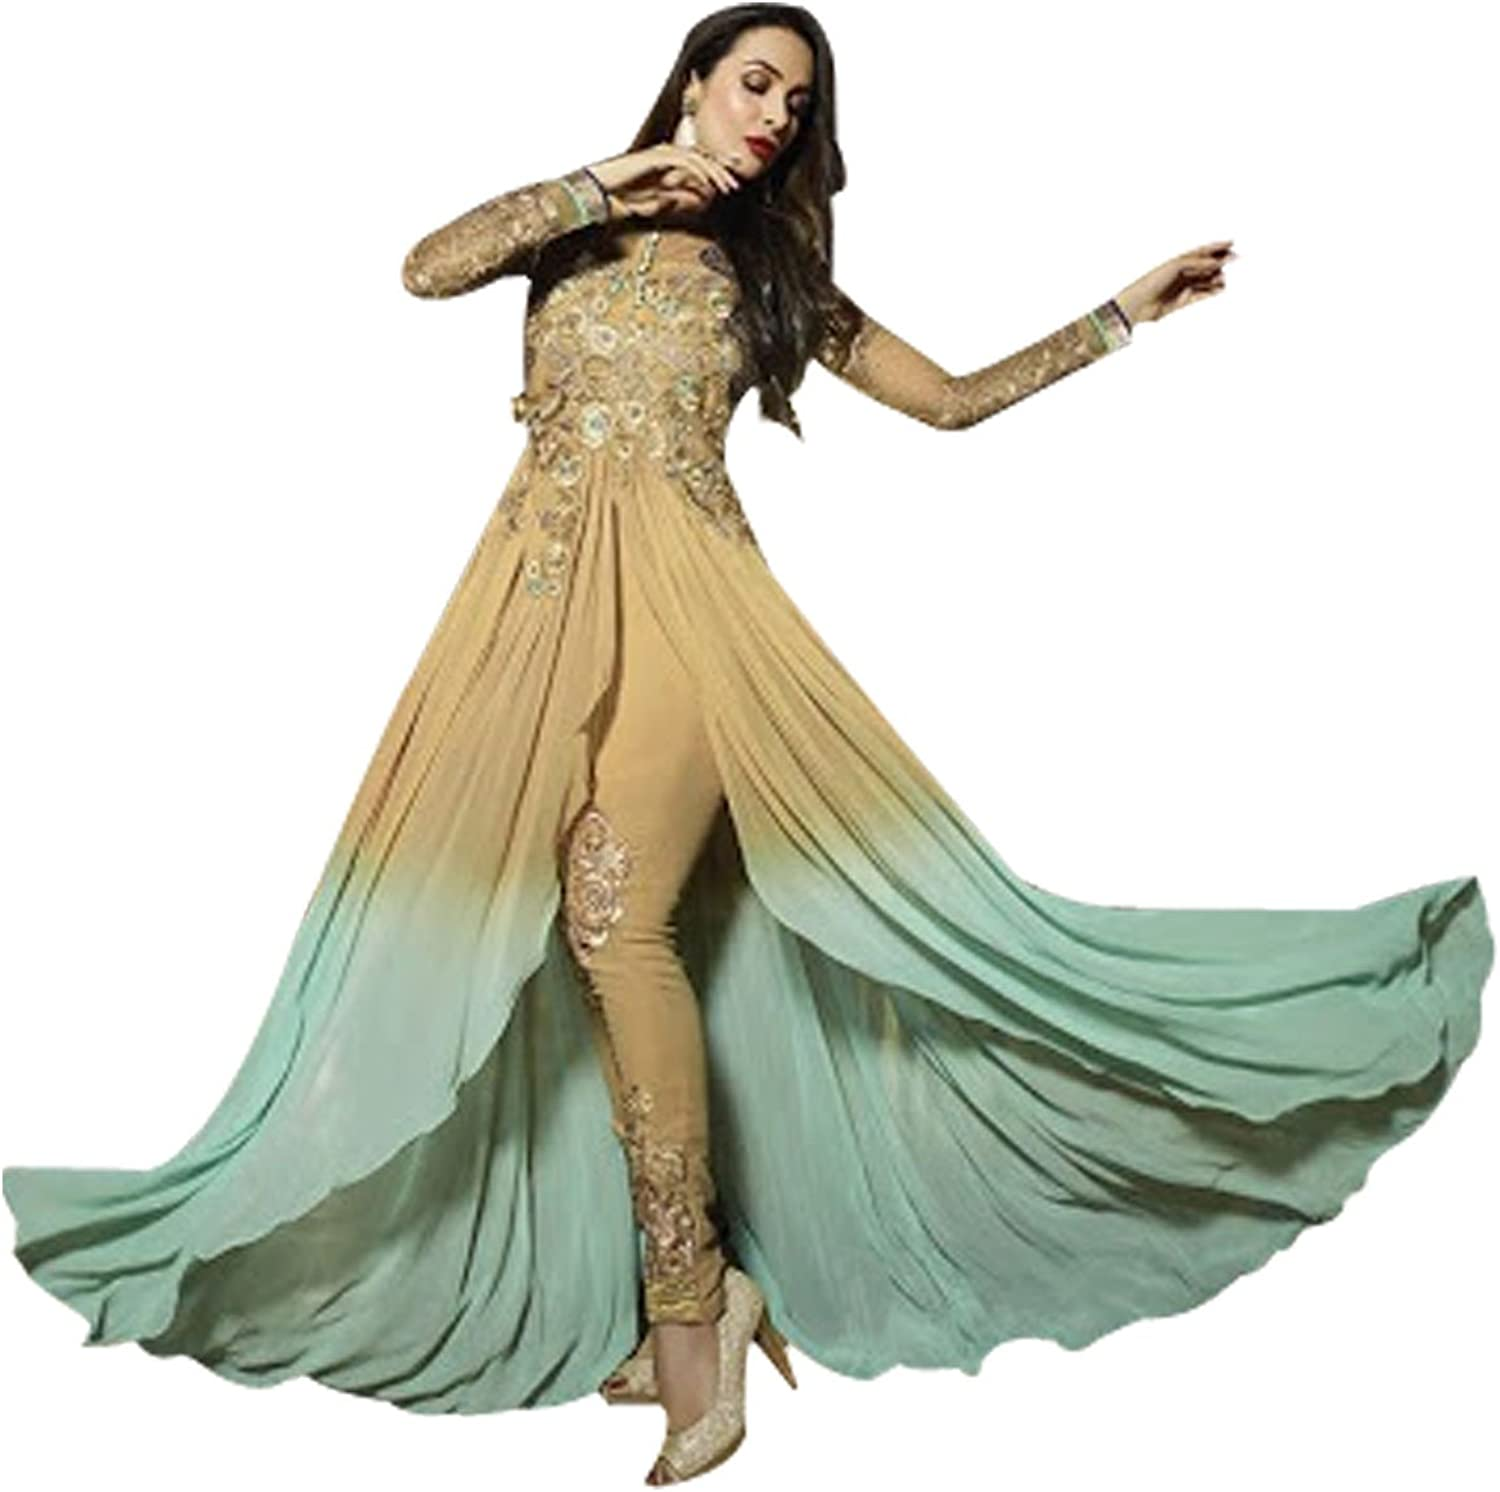 Ethnic Malaika Arora Anarkali Shalwar Kameez Suit Wedding Ethnic Dress Sexy